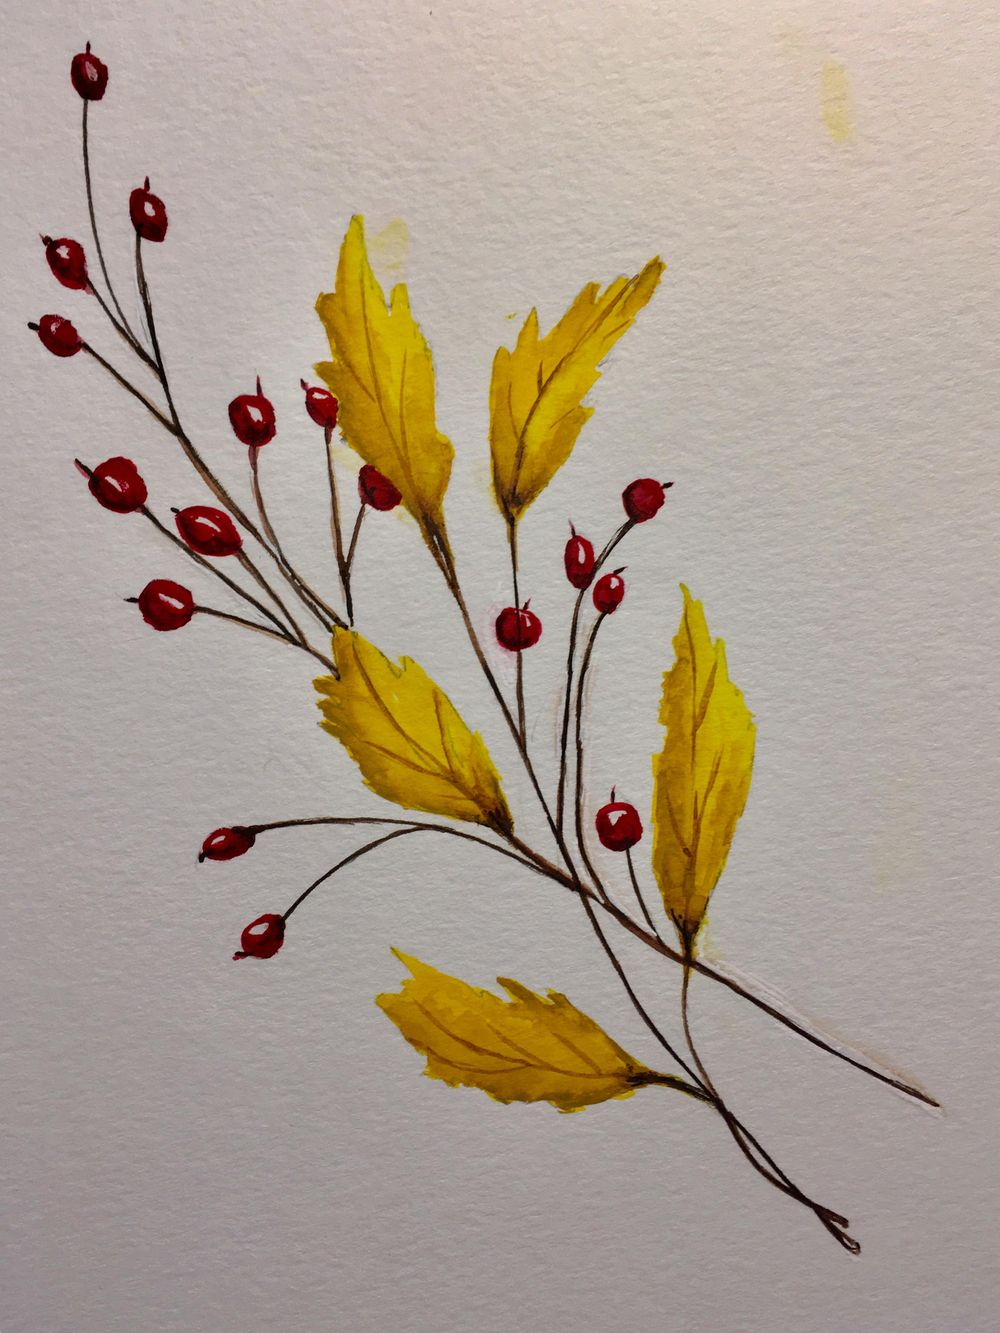 Autumn Leafs and Branches - image 3 - student project